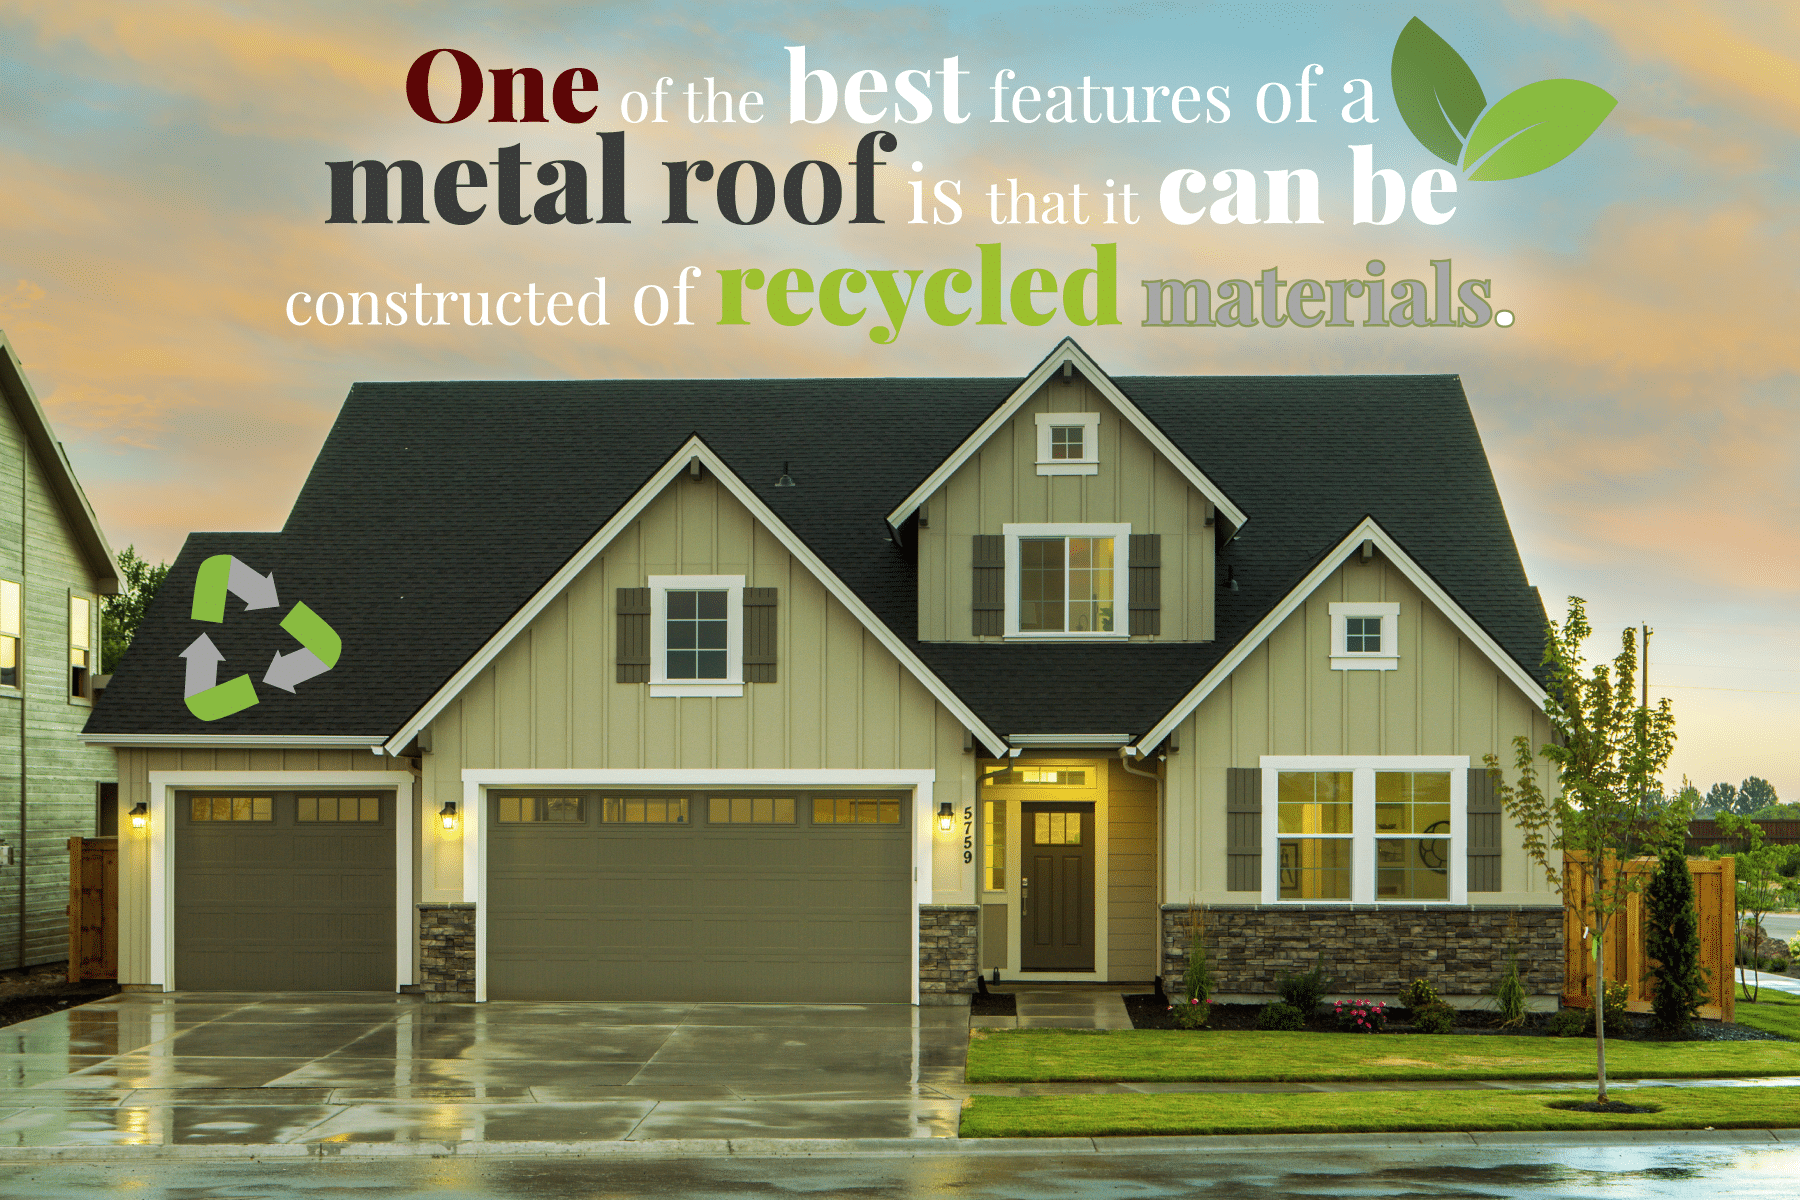 stone coated metal roofing is made from recycled materials